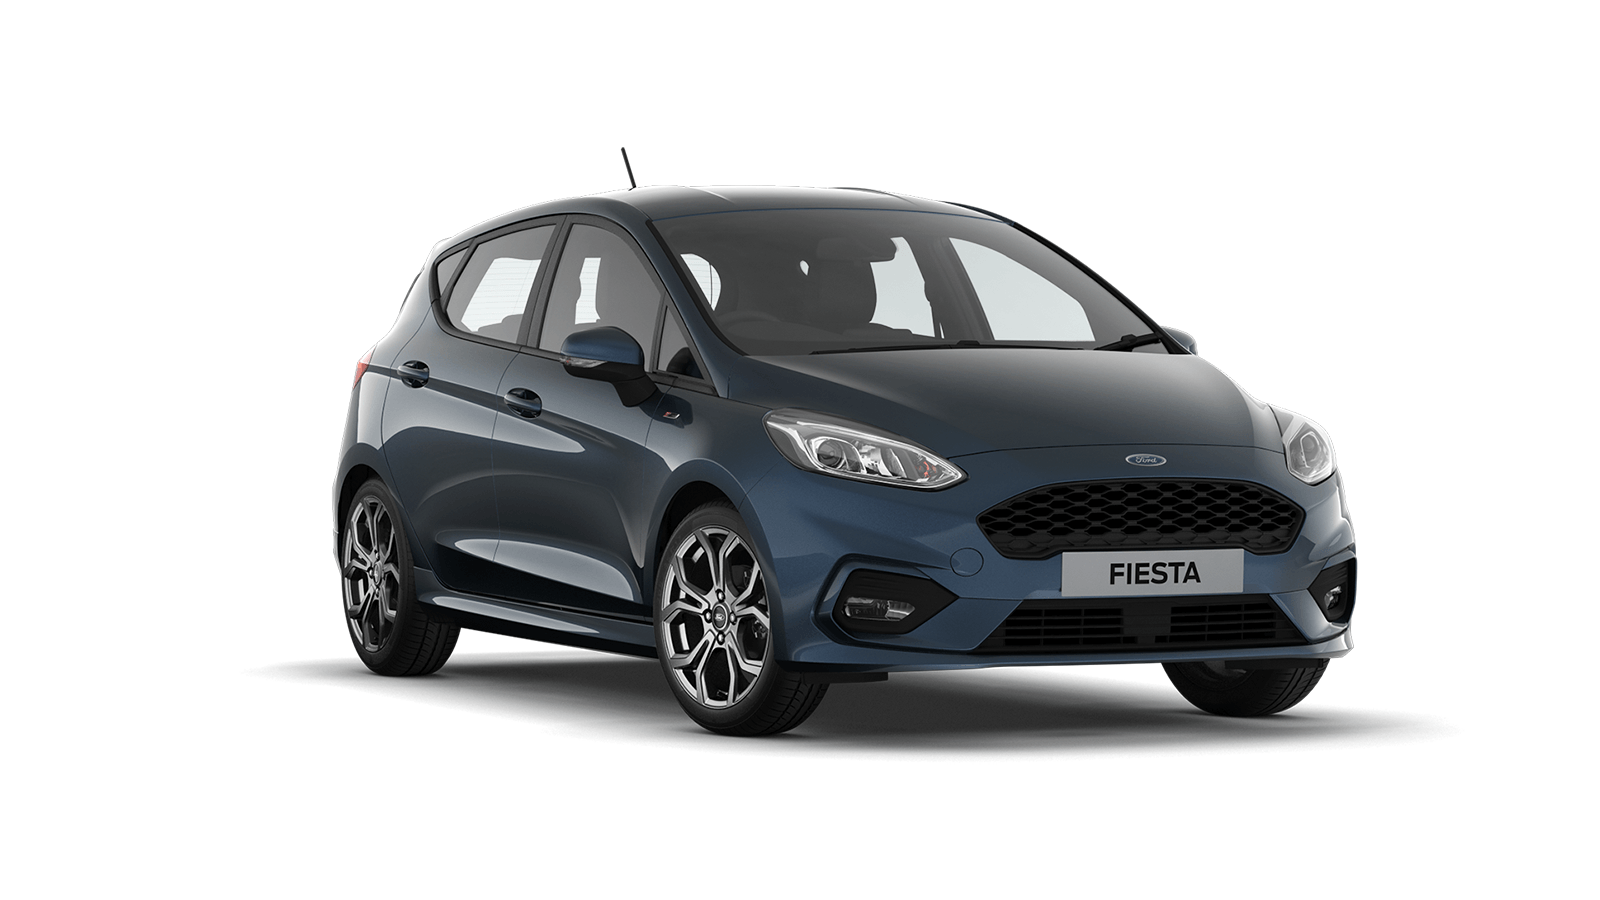 https://www.dealerinternet.co.uk/images/FIESTA%20B299/2019/5%20Door/ST-Line/CHROME-BLUE.png